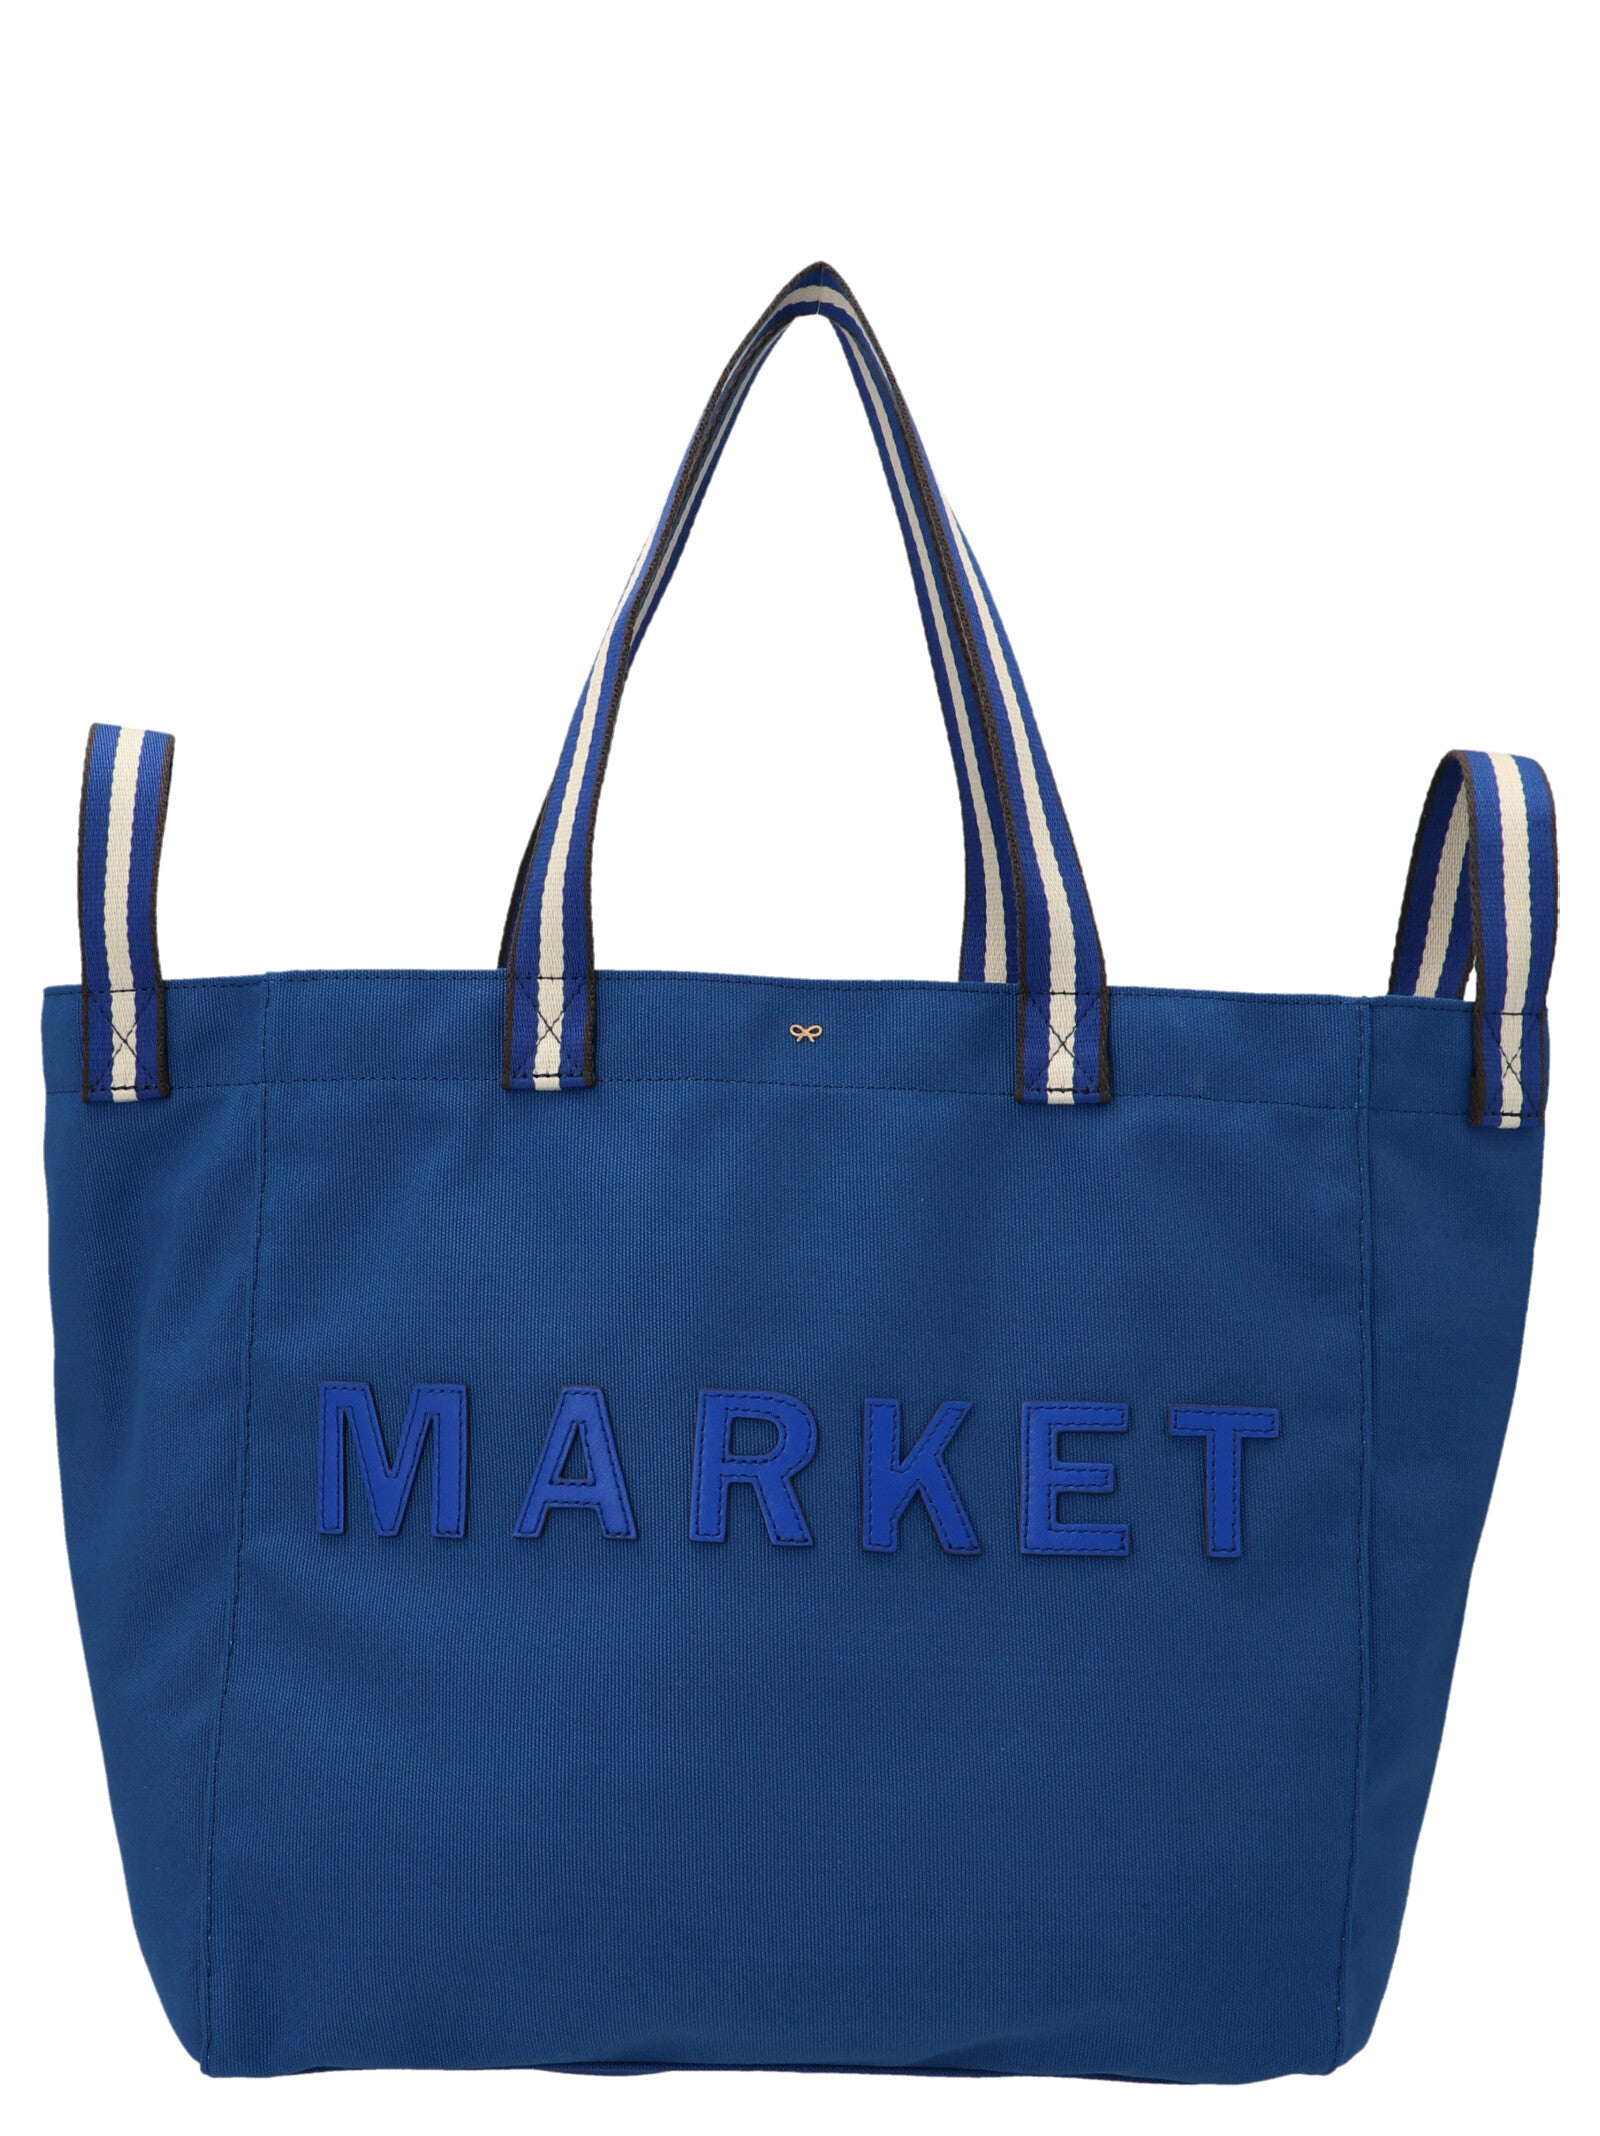 Anya Hindmarch ANYA HINDMARCH MARKET HOUSEHOLD TOTE BAG